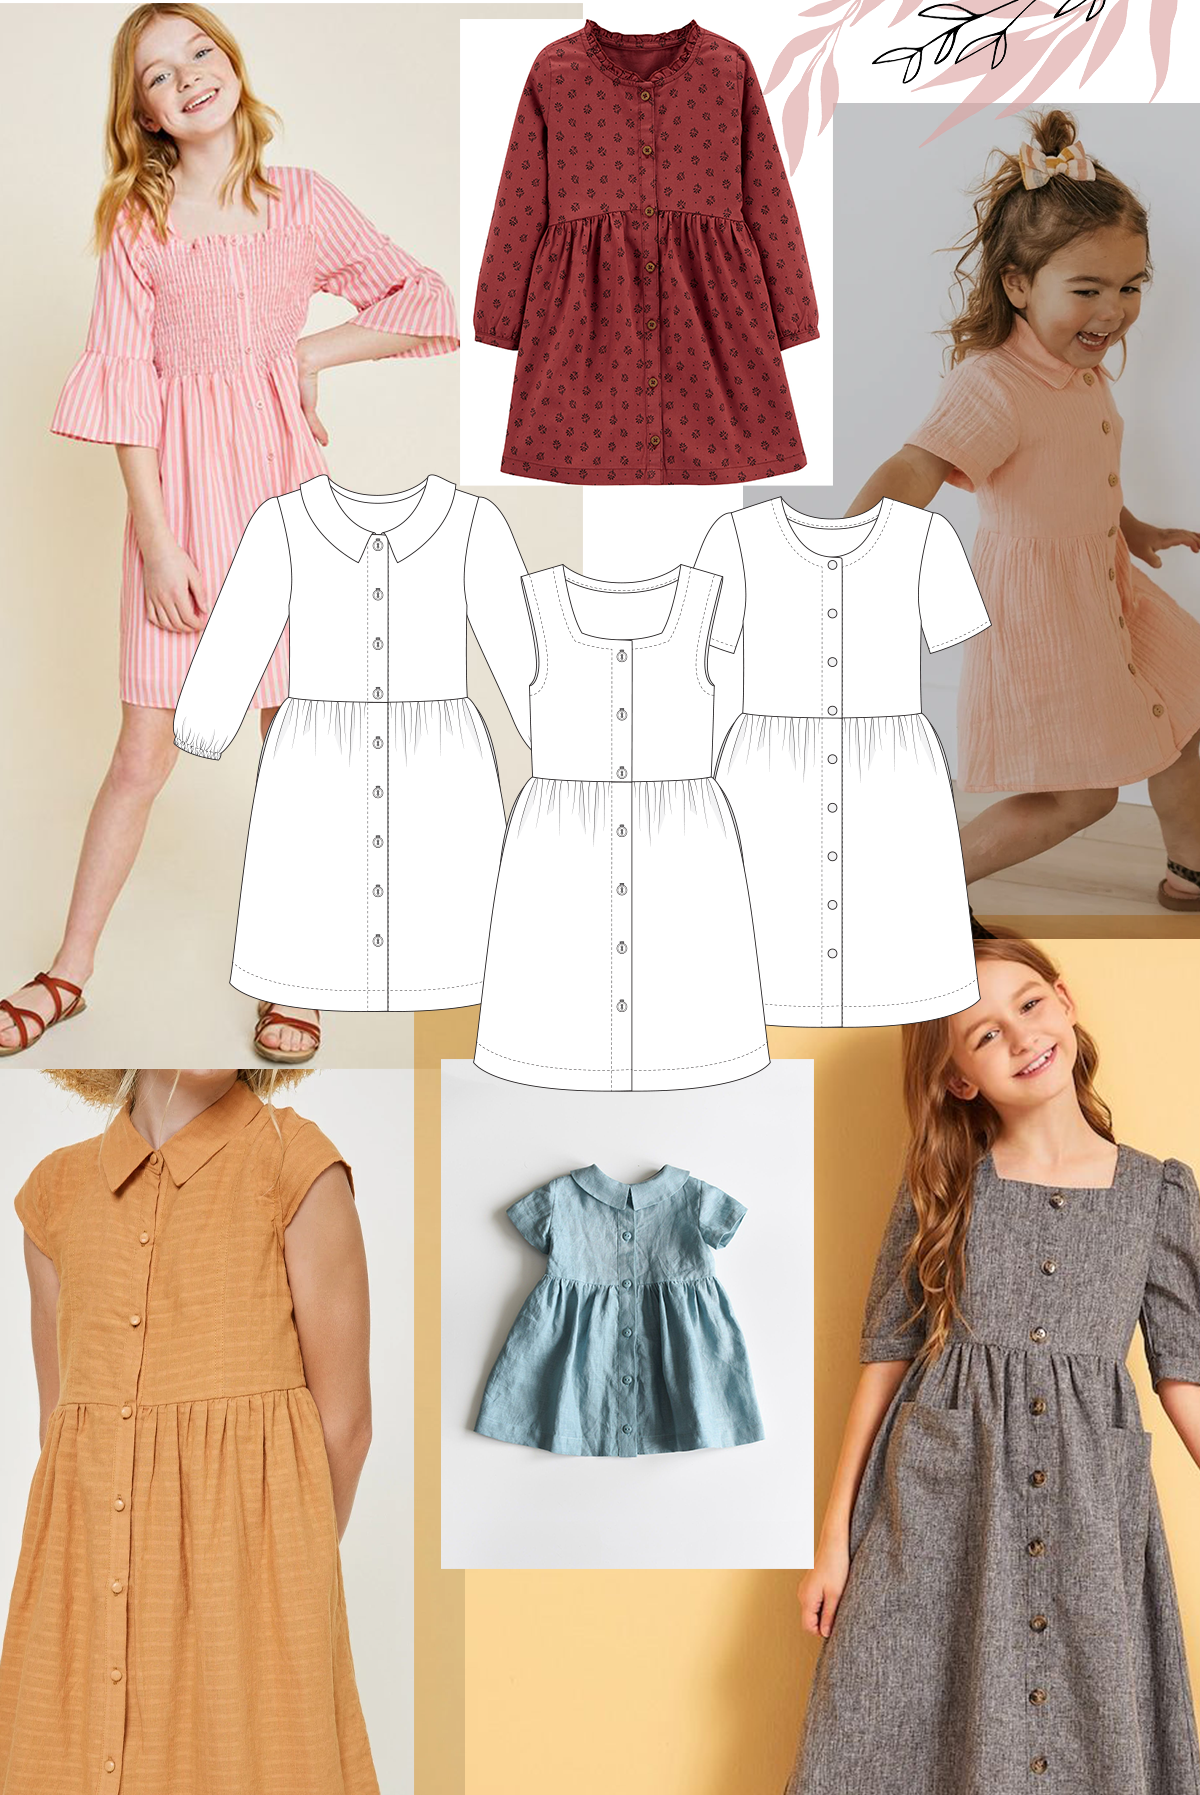 Add a different neckline to the Mini Darling Ranges for a different look